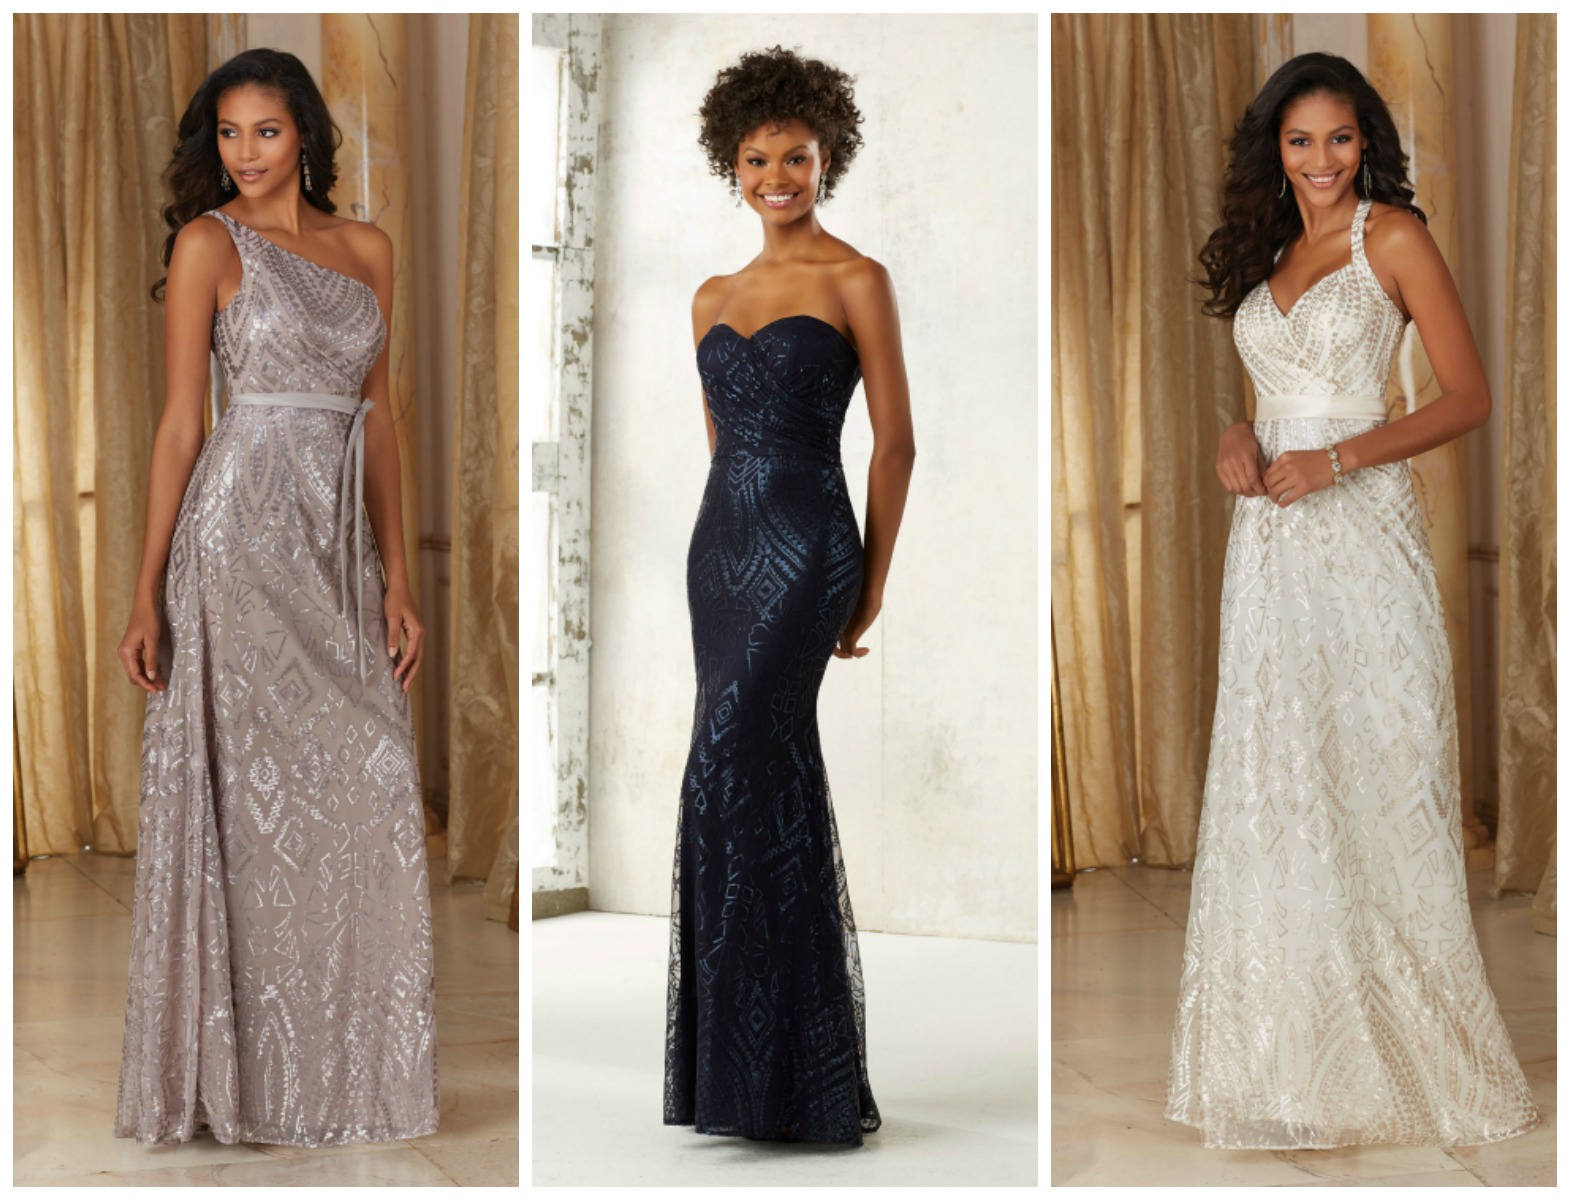 Brides of america online store patterned sequined bridesmaid today the majority of our brides are searching for bridesmaid gowns that the women in their bridal party can wear again after the wedding ombrellifo Images